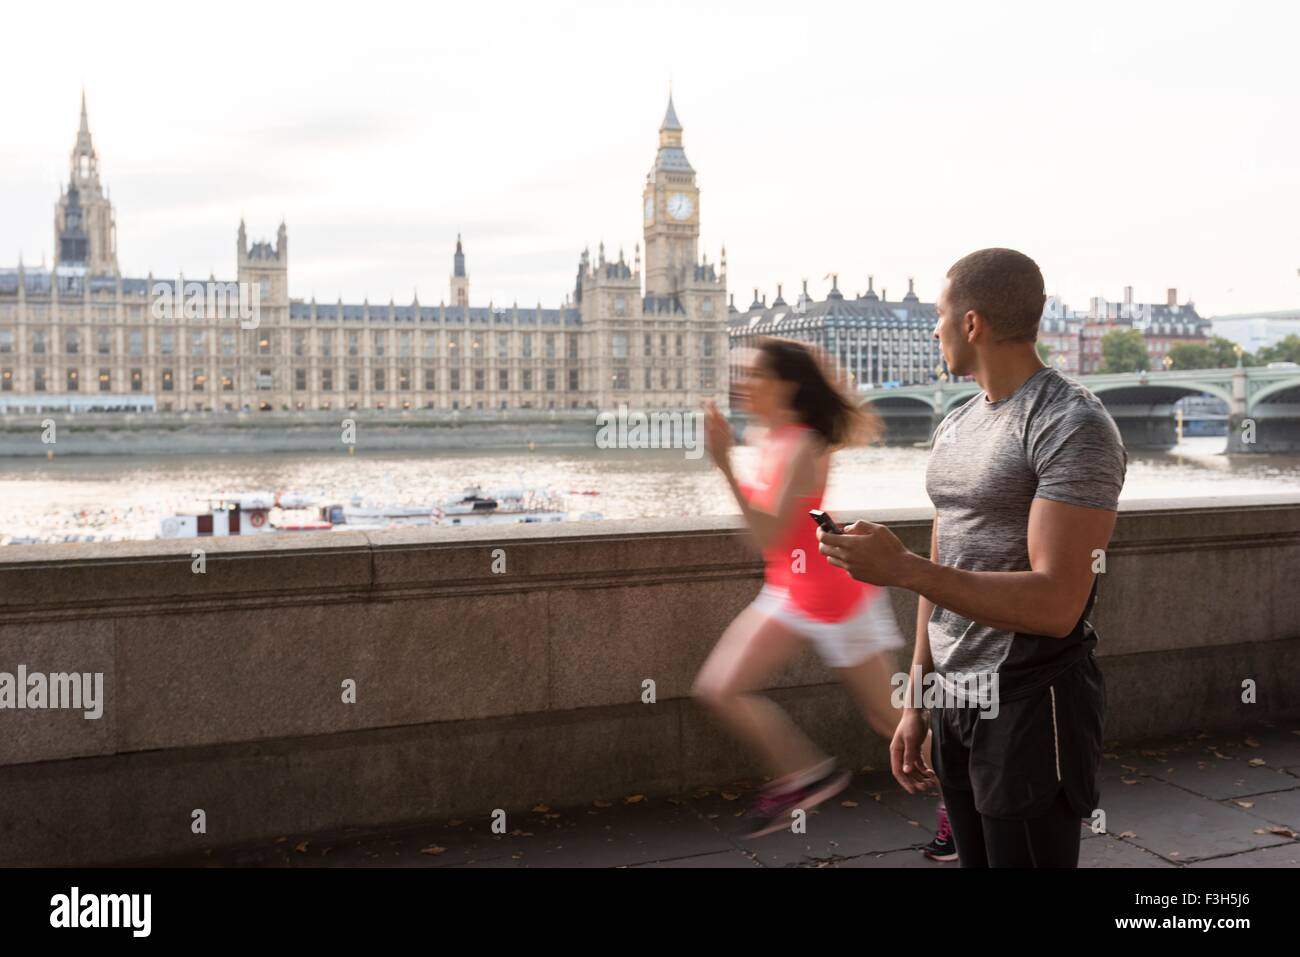 Male trainer timing female runner on Southbank, London, UK - Stock Image